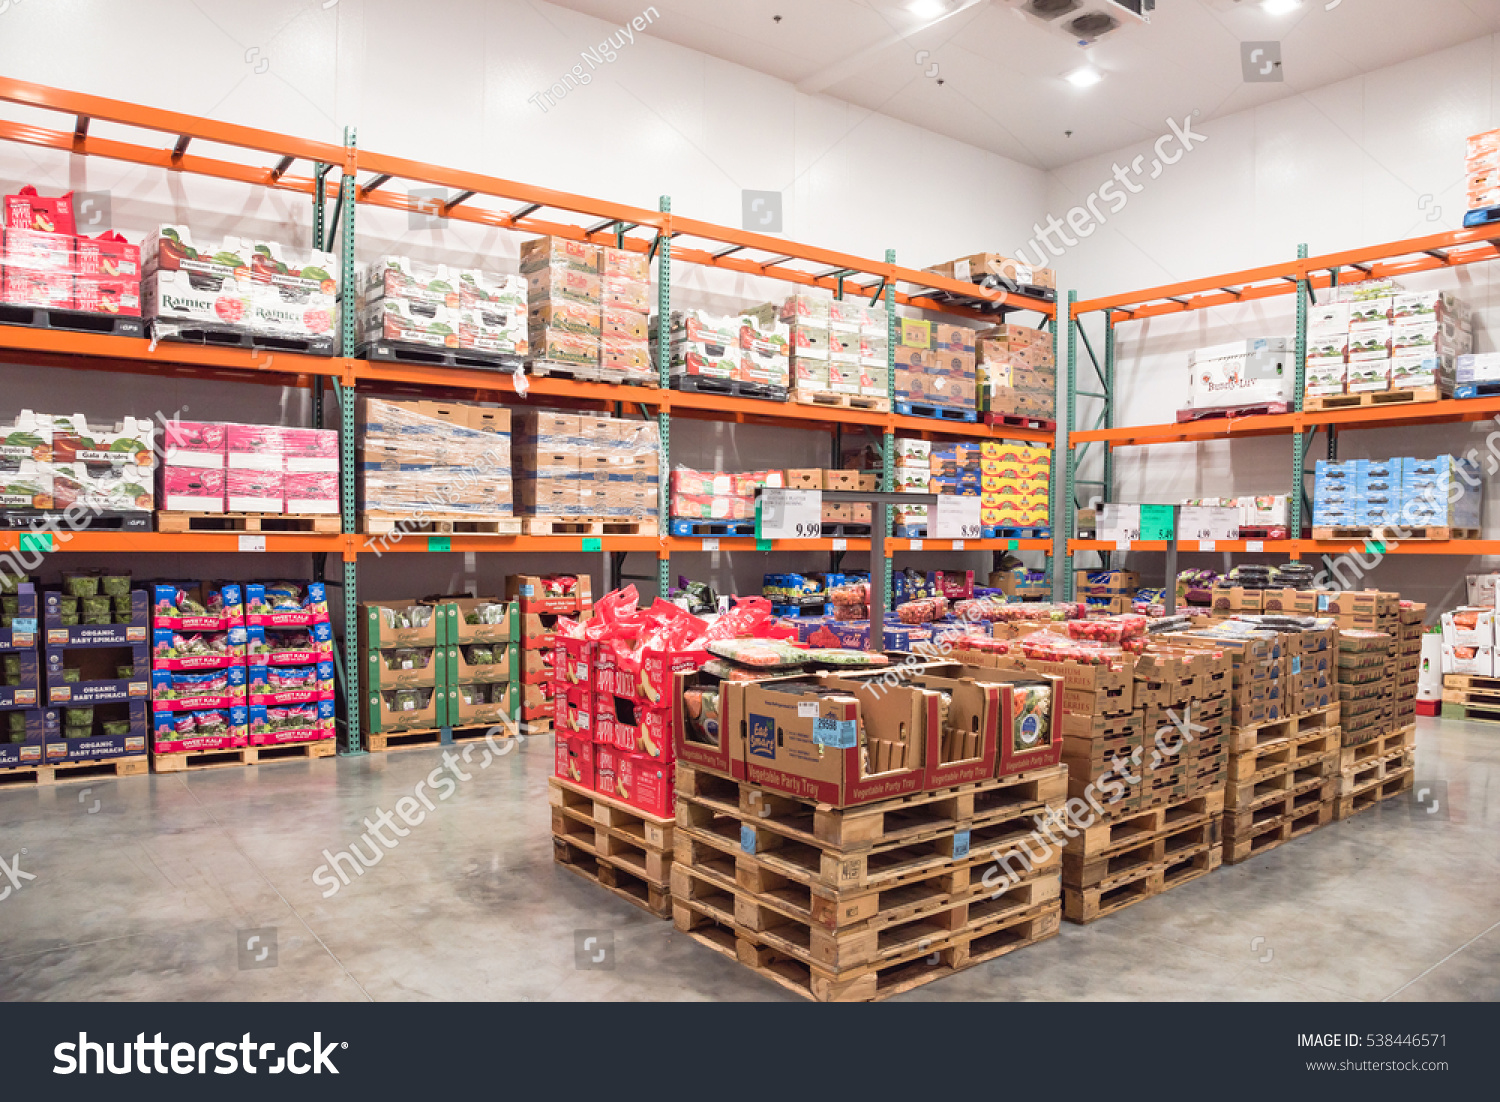 costco search photostok stock image images photos humble tx us nov 23 2016 fresh produce refrigerated room in